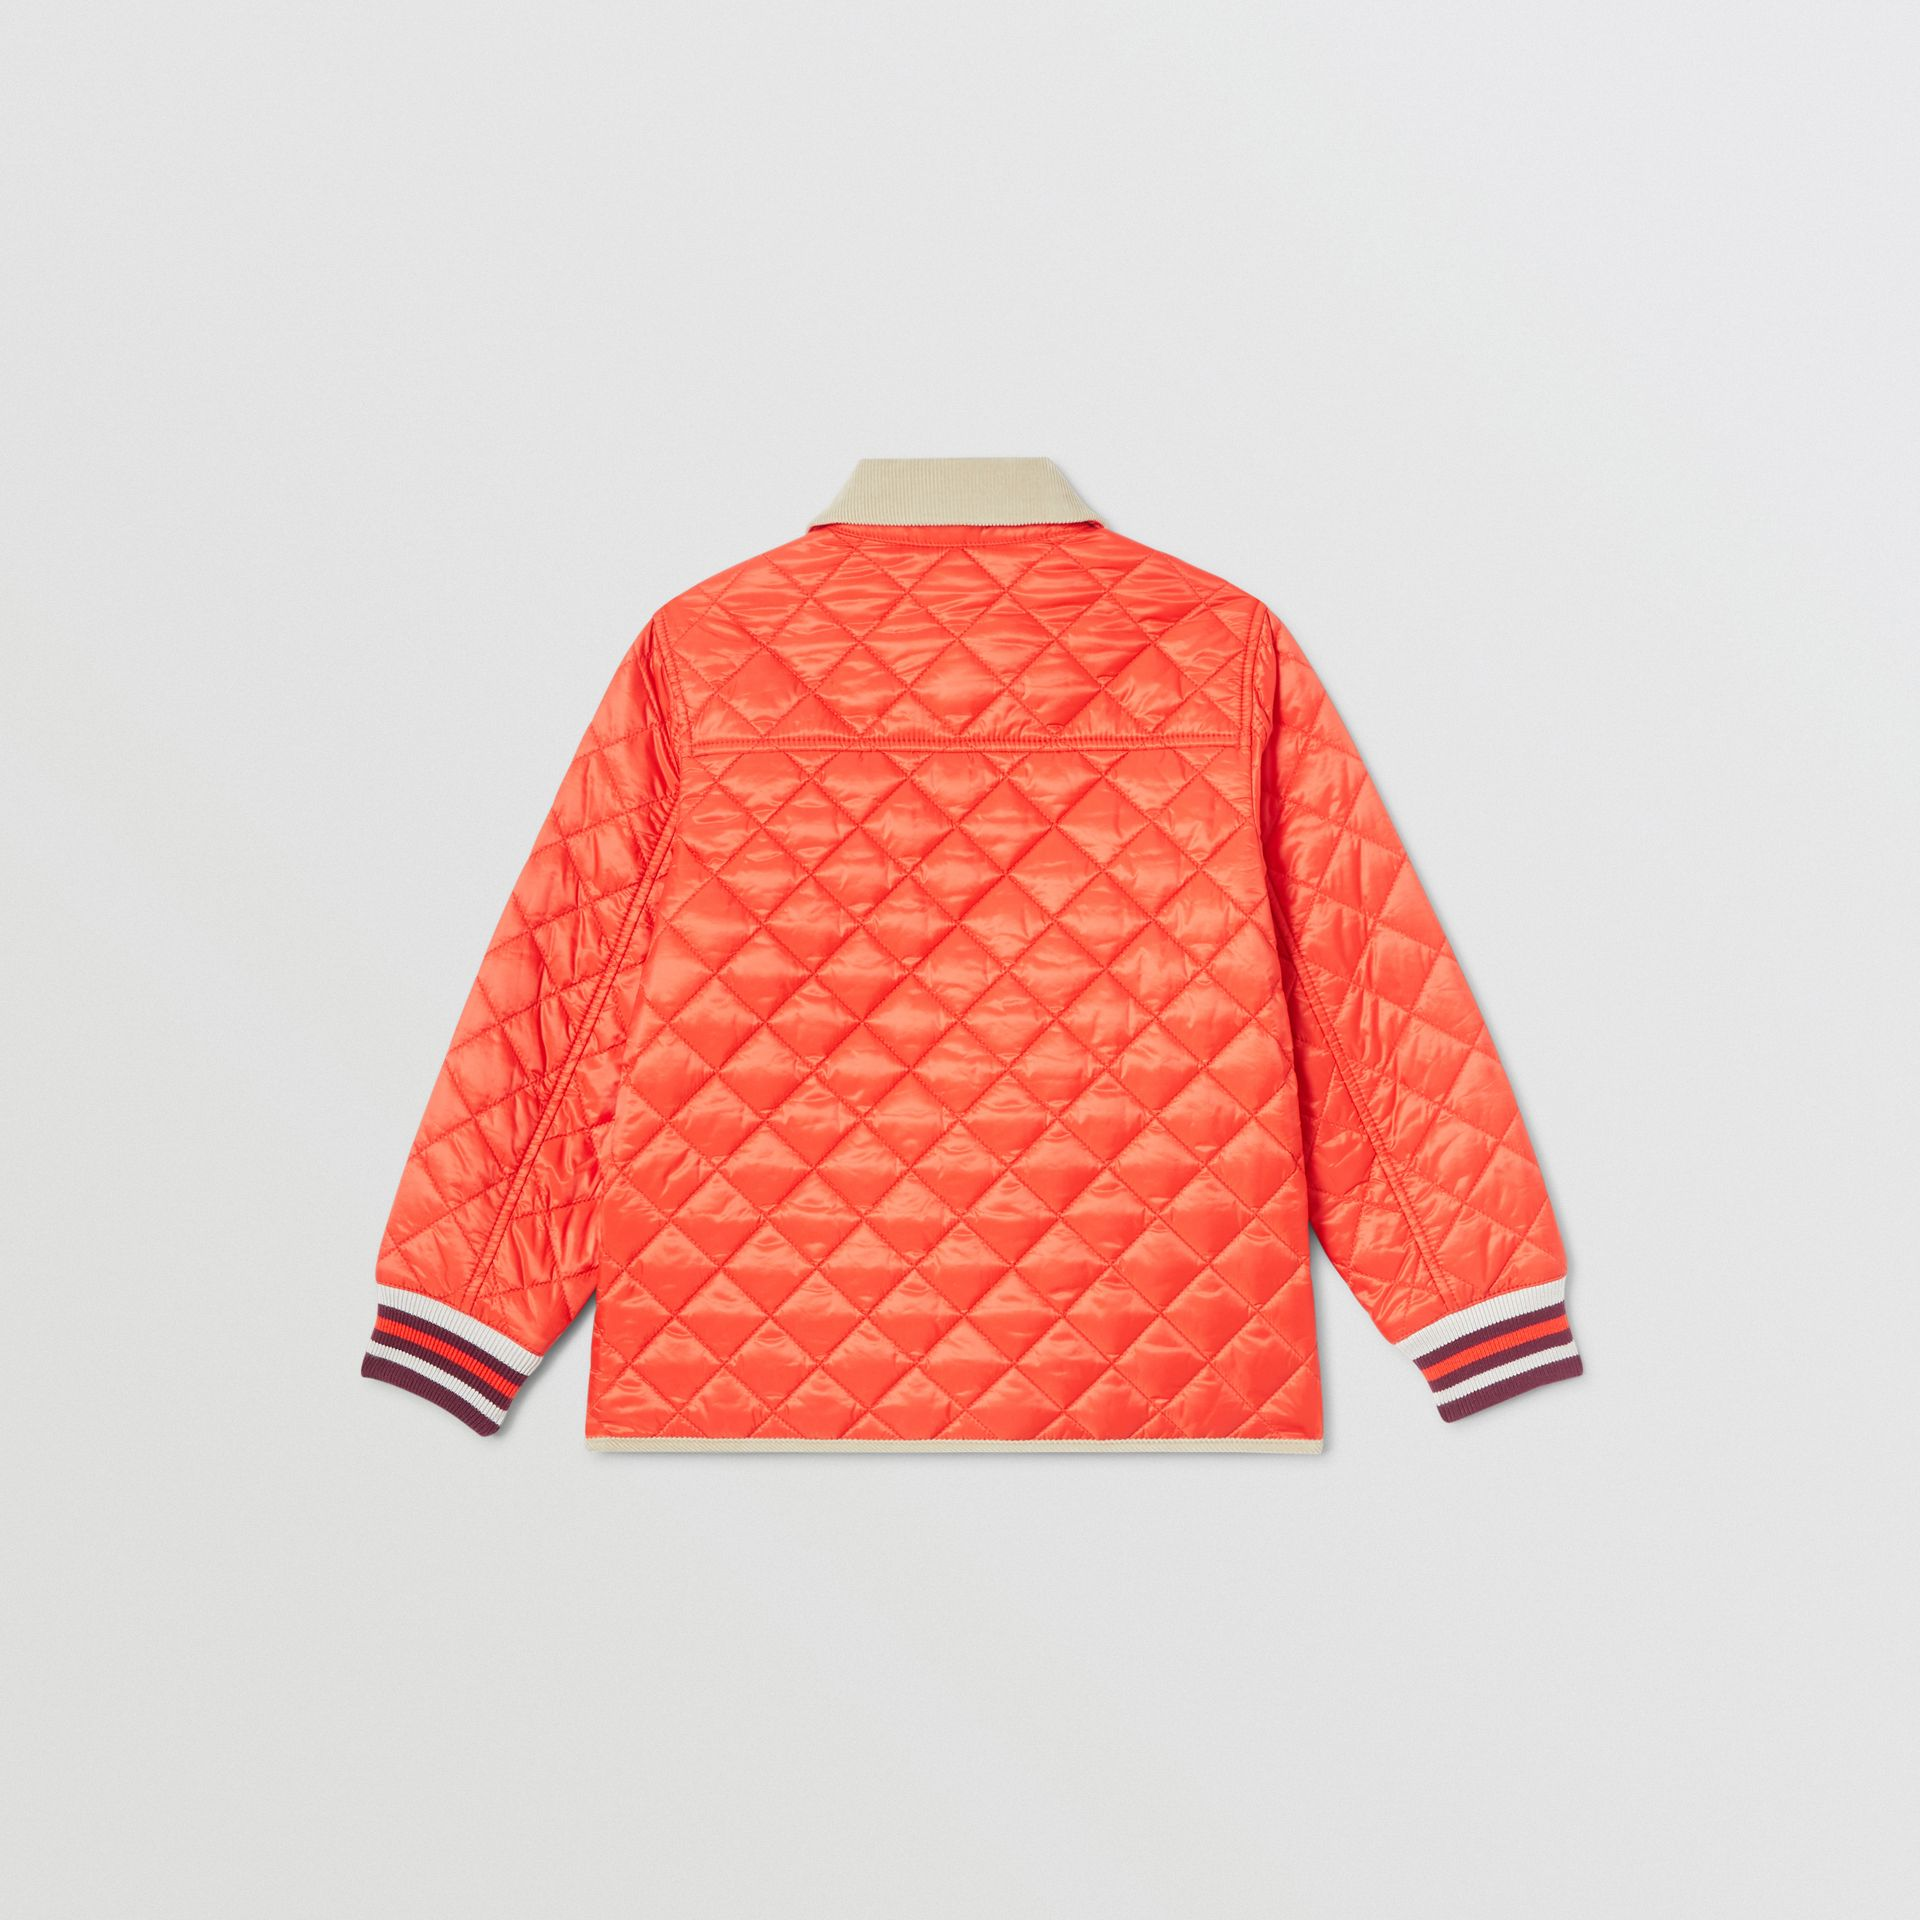 Corduroy Trim Lightweight Diamond Quilted Jacket in Bright Coral Orange | Burberry - gallery image 4